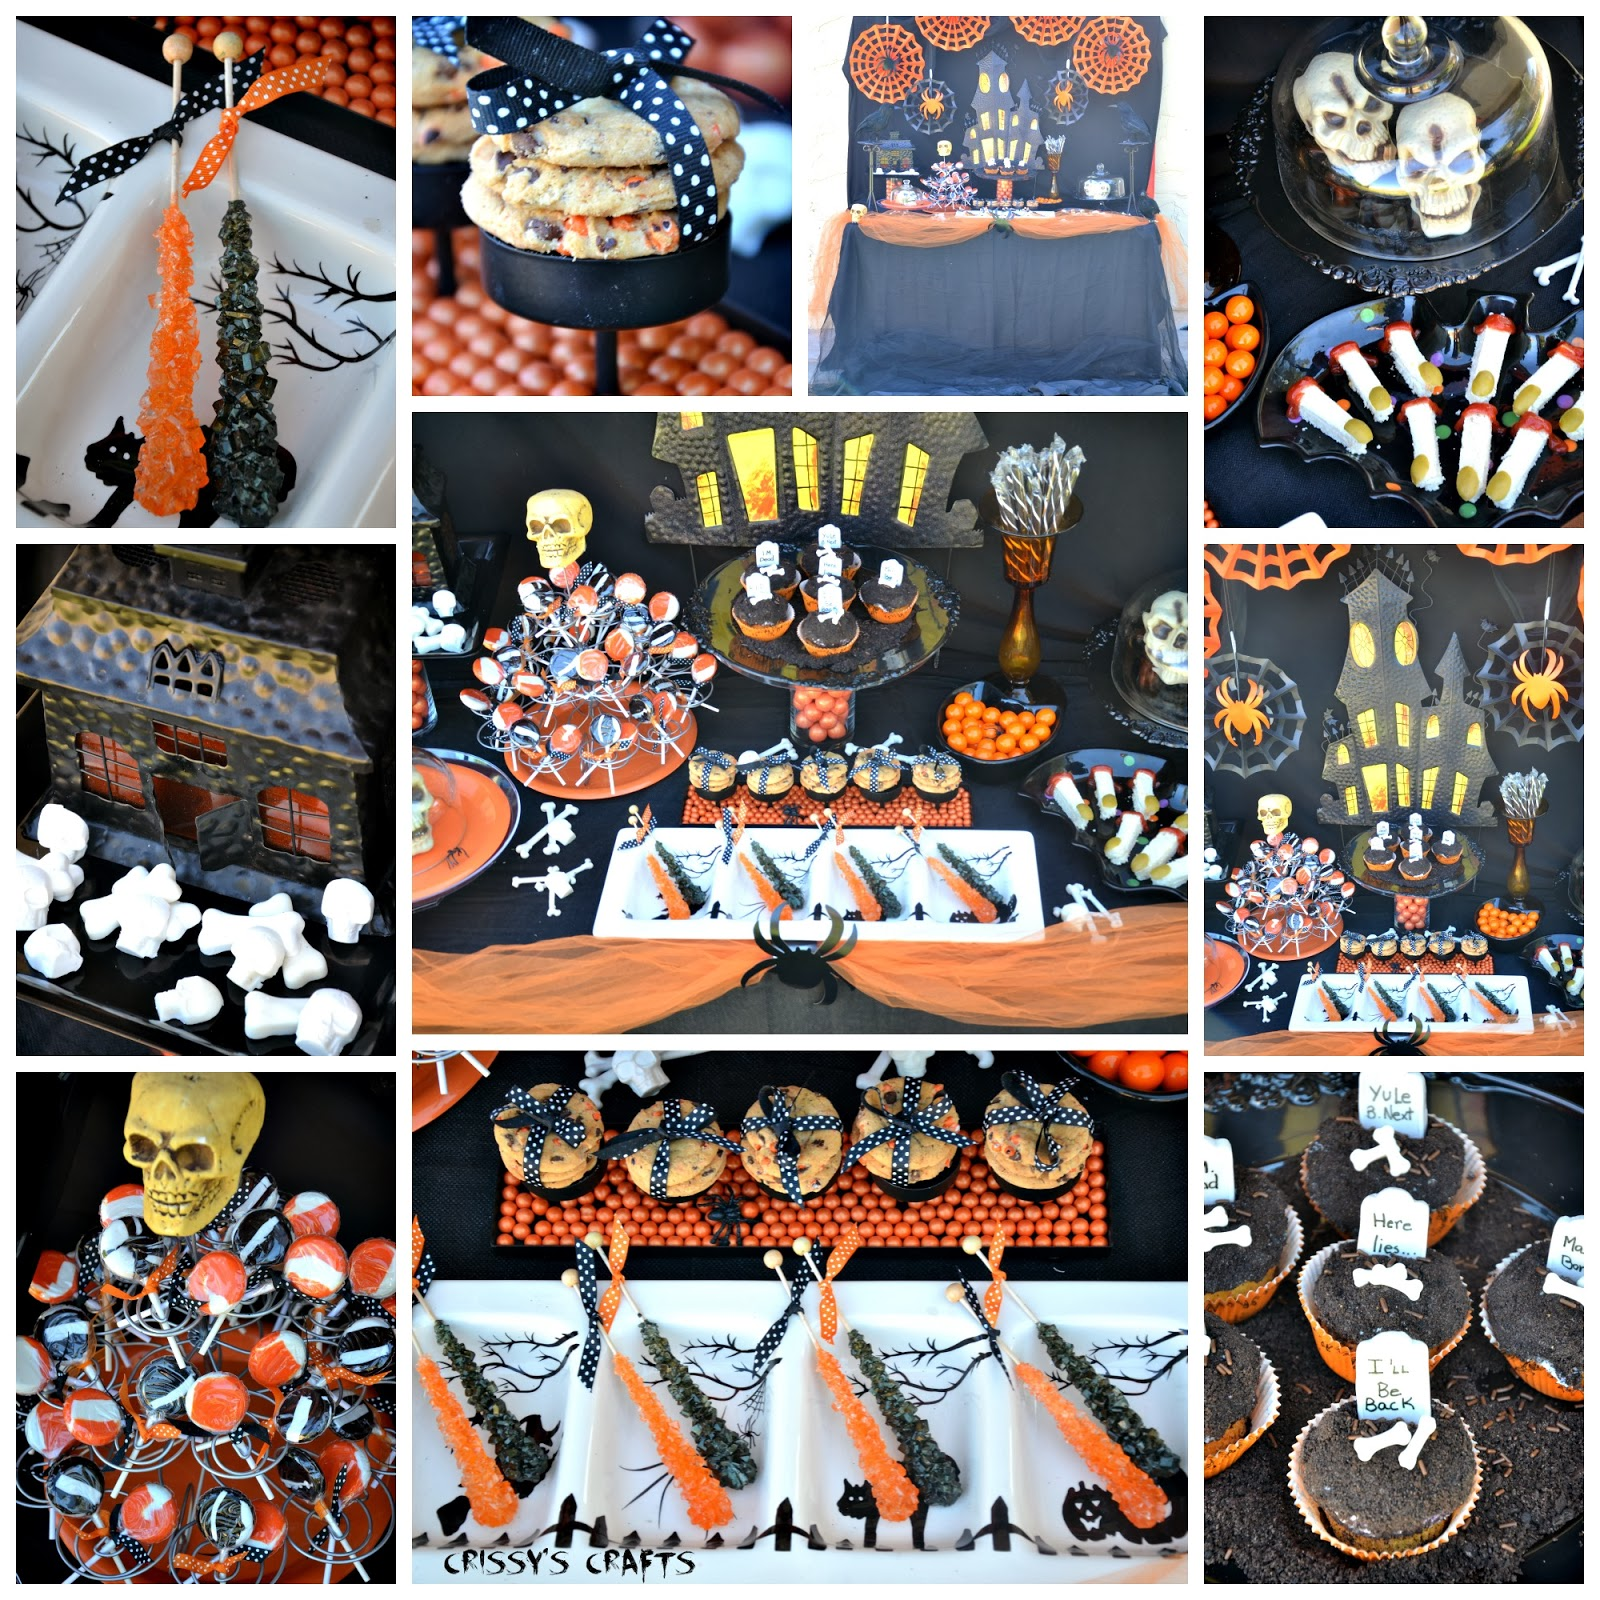 Crissy's Crafts: Frightfully Fancy Halloween Party